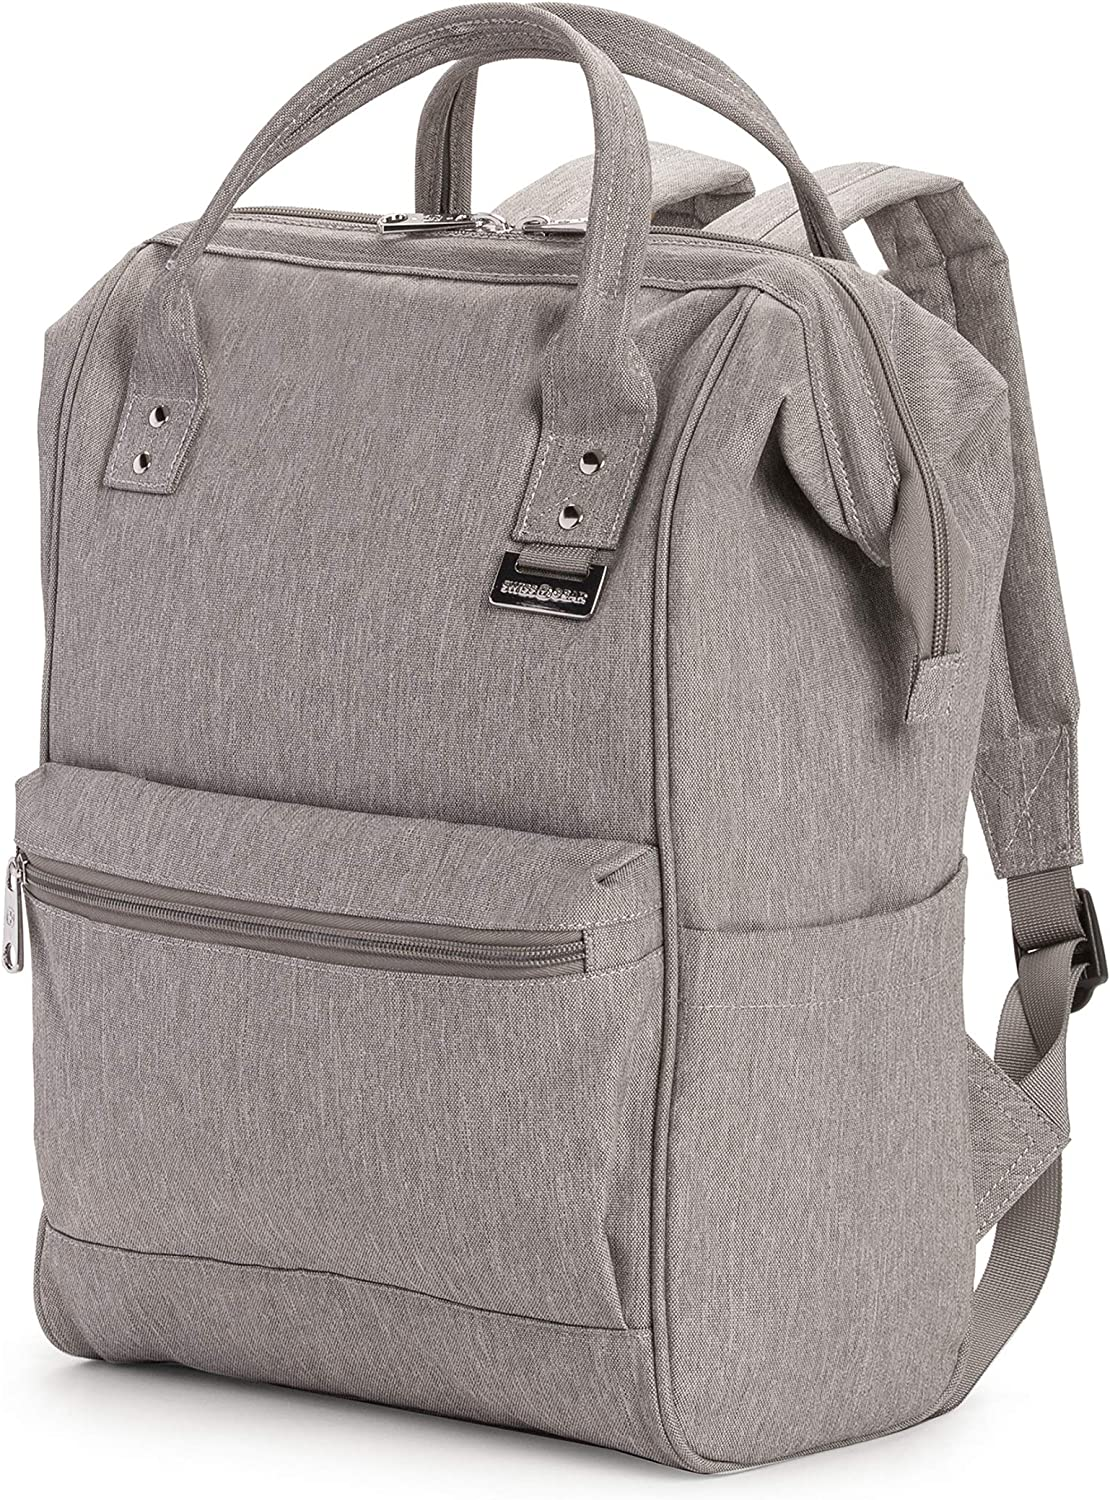 SWISSGEAR 3576 Artz Vintage Laptop Backpack